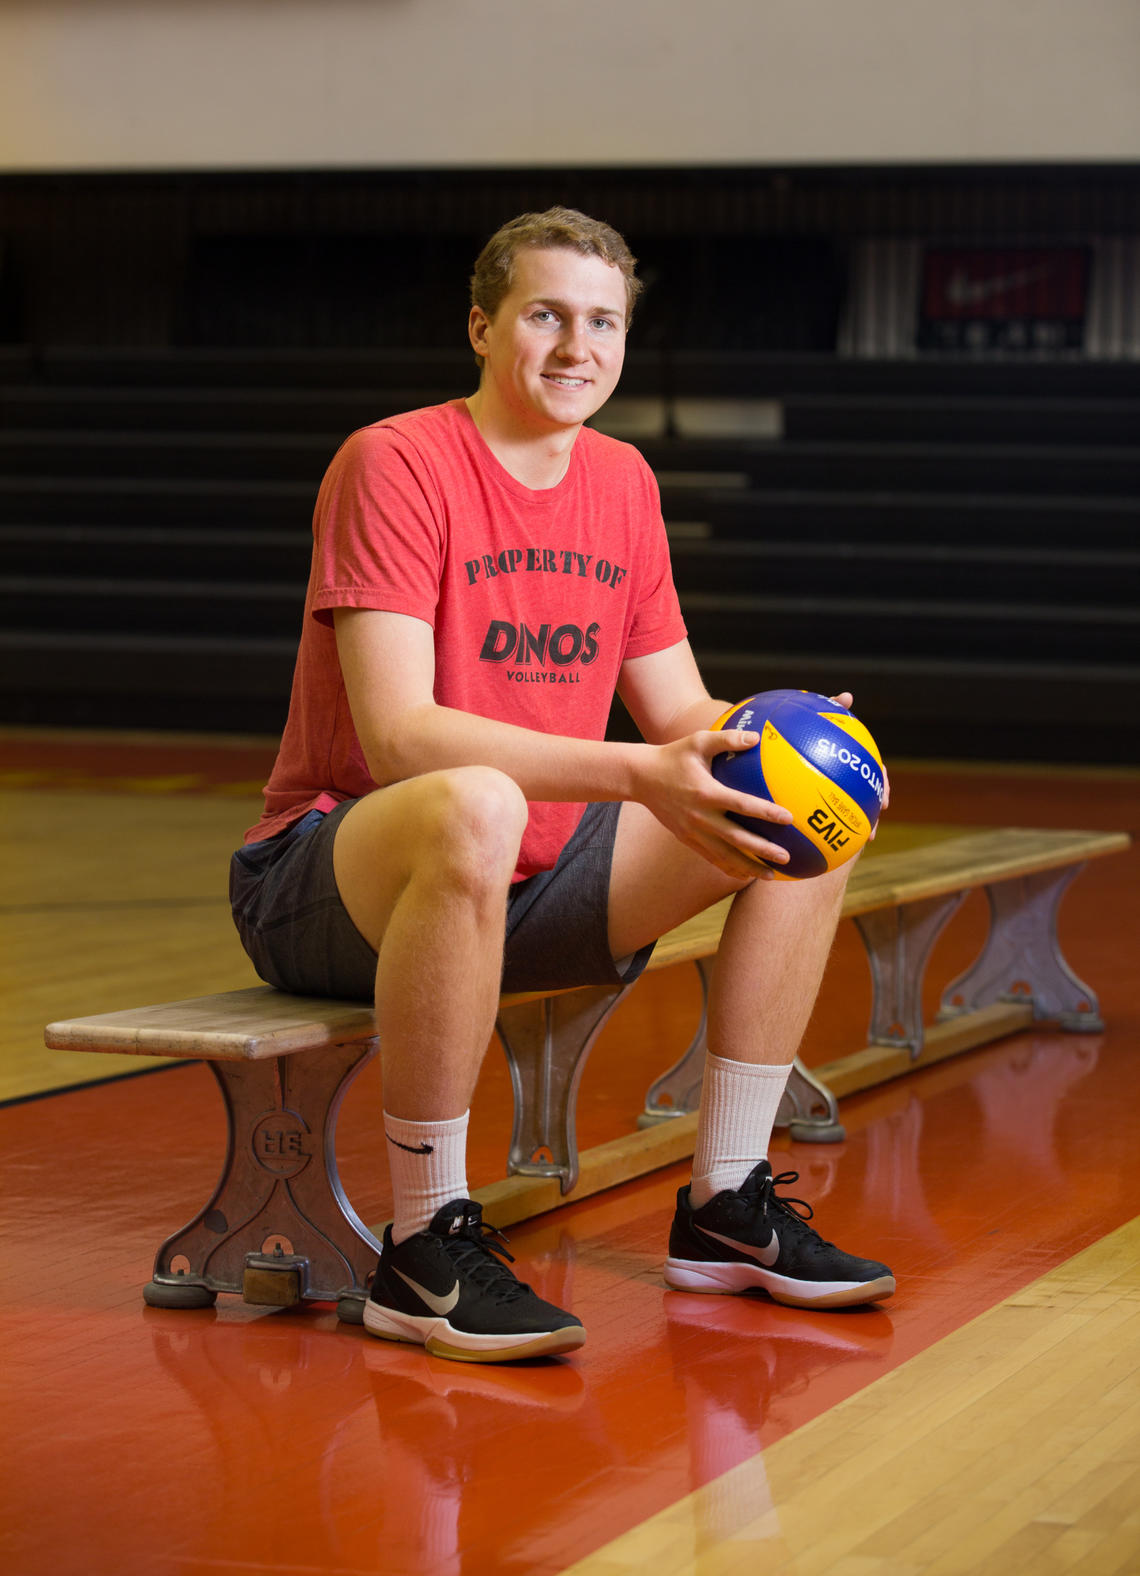 Volleyball Alberta created new safety policy in response to research by University of Calgary undergrad Derek Meeuwisse.